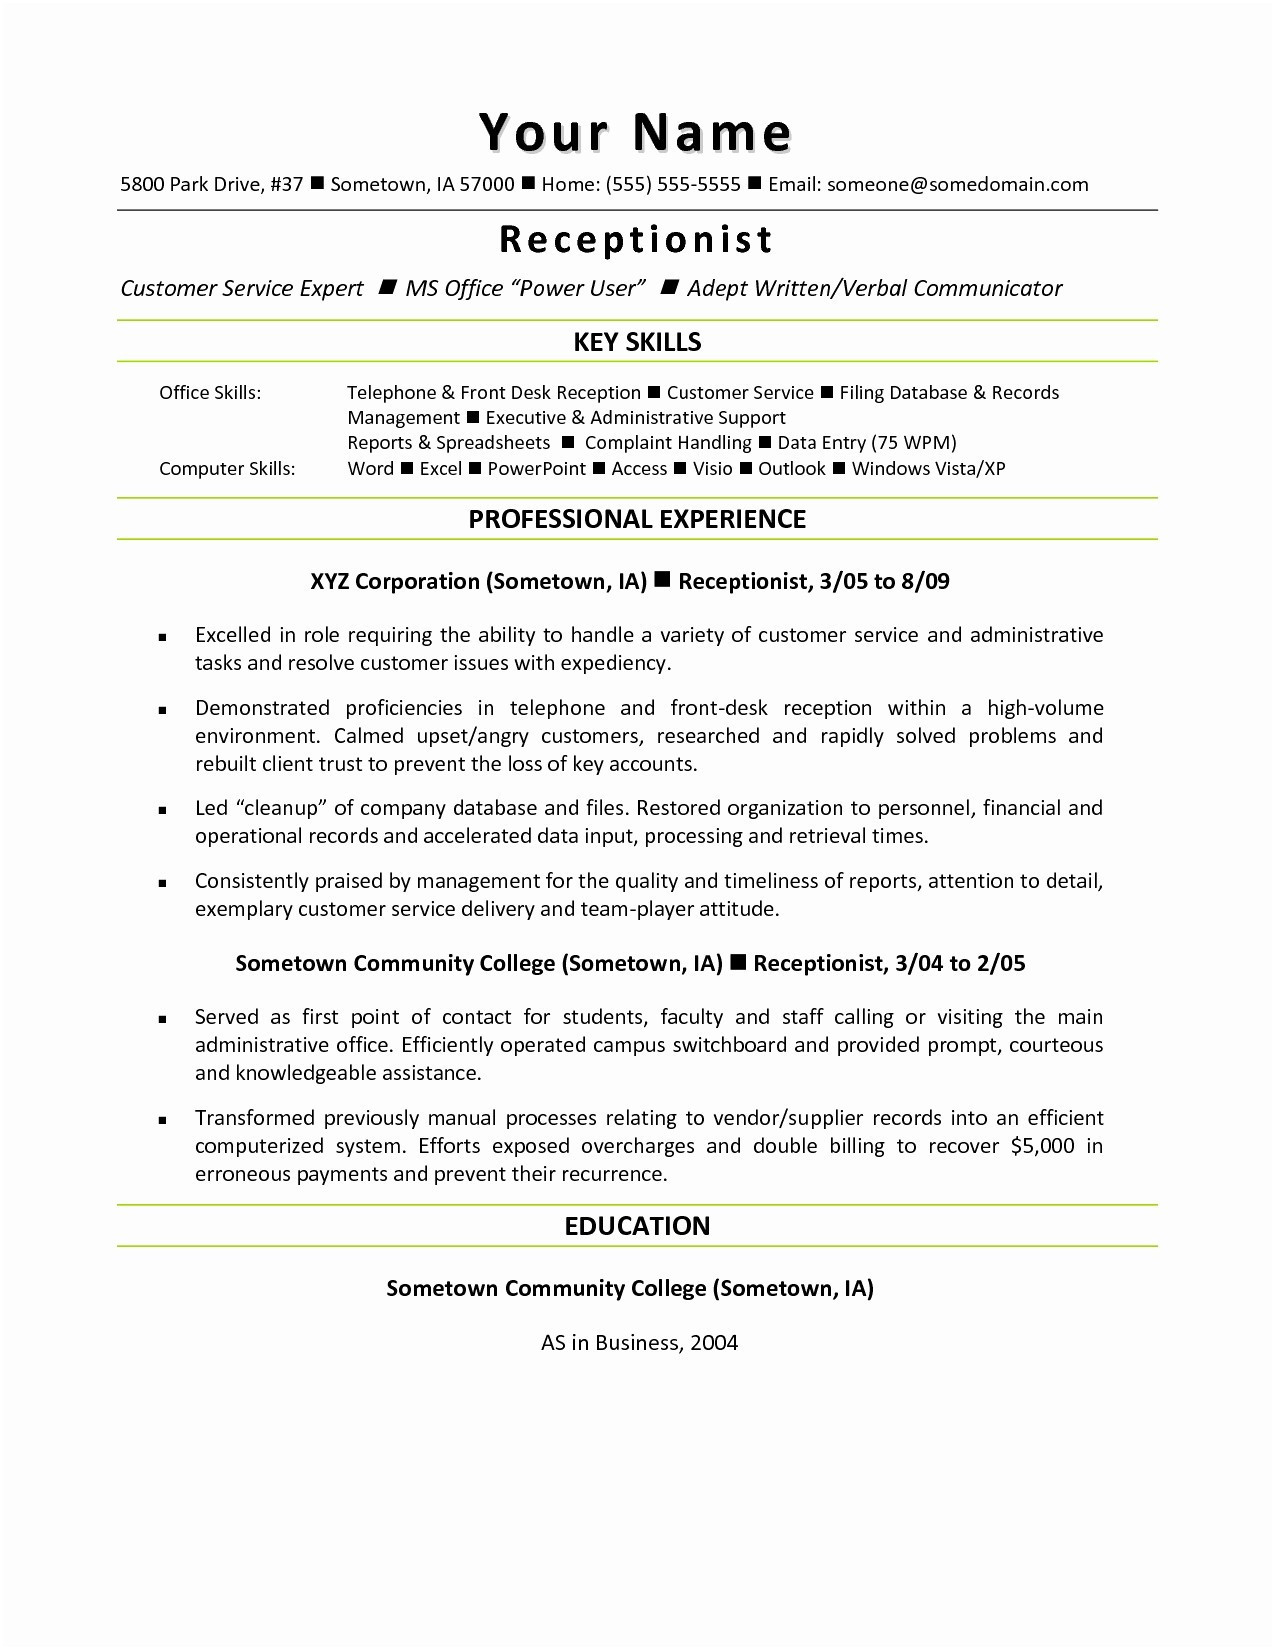 Direct Mail Sales Letter Template - Professional Resumes Templates Free Reference Resume Mail format